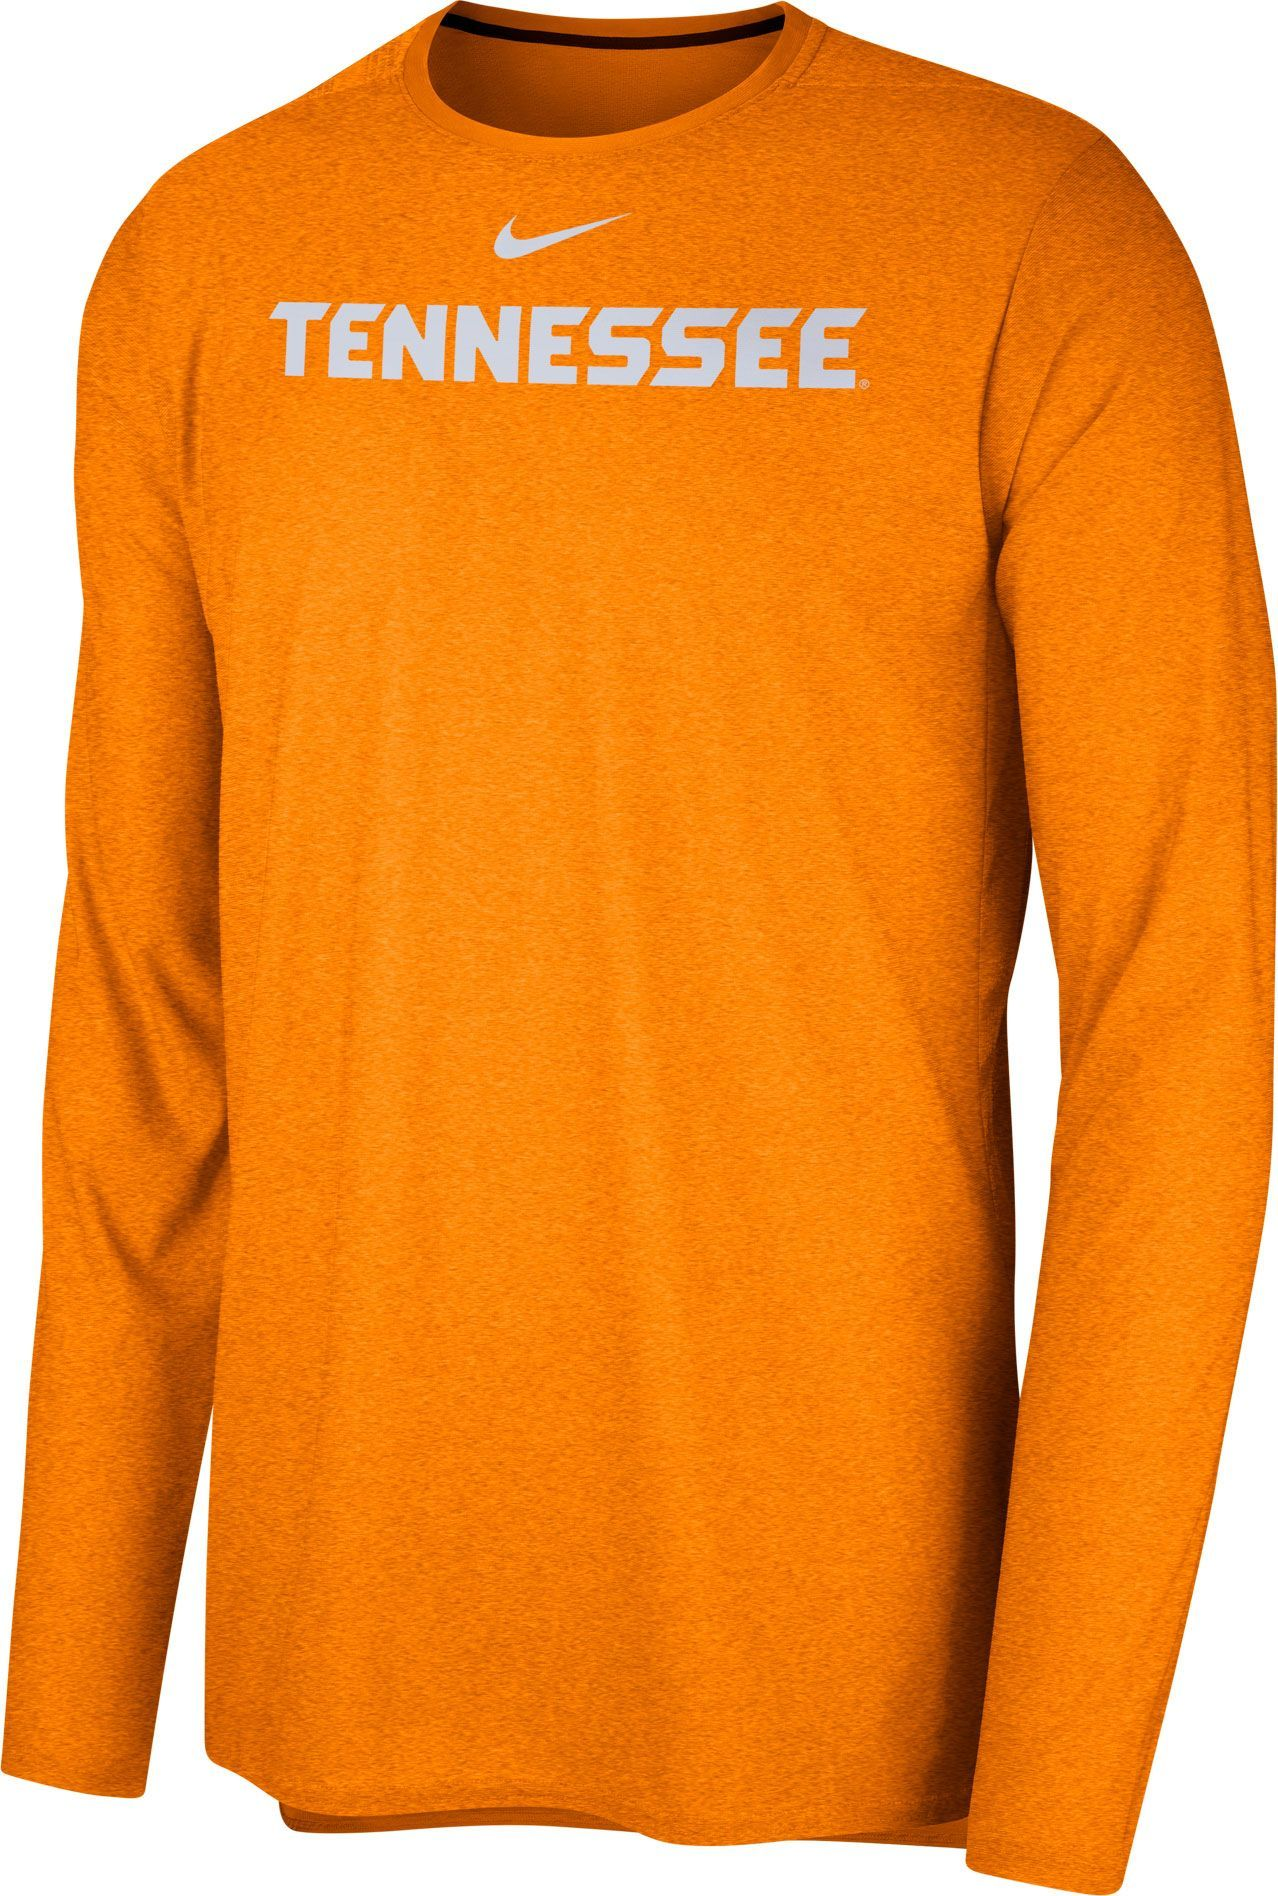 f49eb0dff Nike Men's Tennessee Volunteers Tennessee Orange Football Dri-FIT Player  Long Sleeve T-Shirt, Size: Small, Team